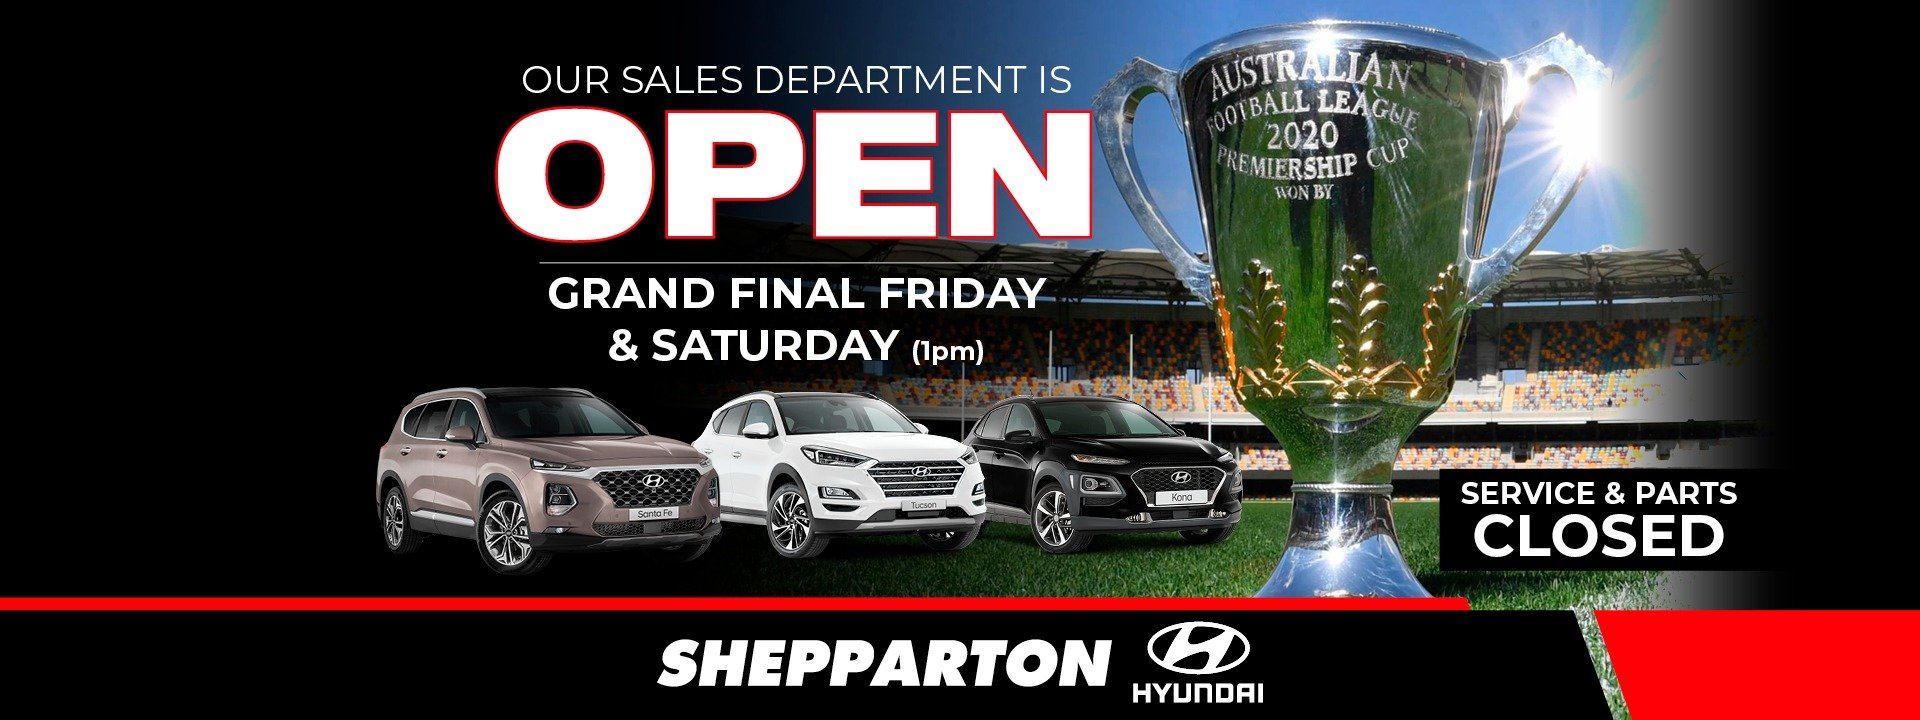 Open Grand Final Friday and Saturday